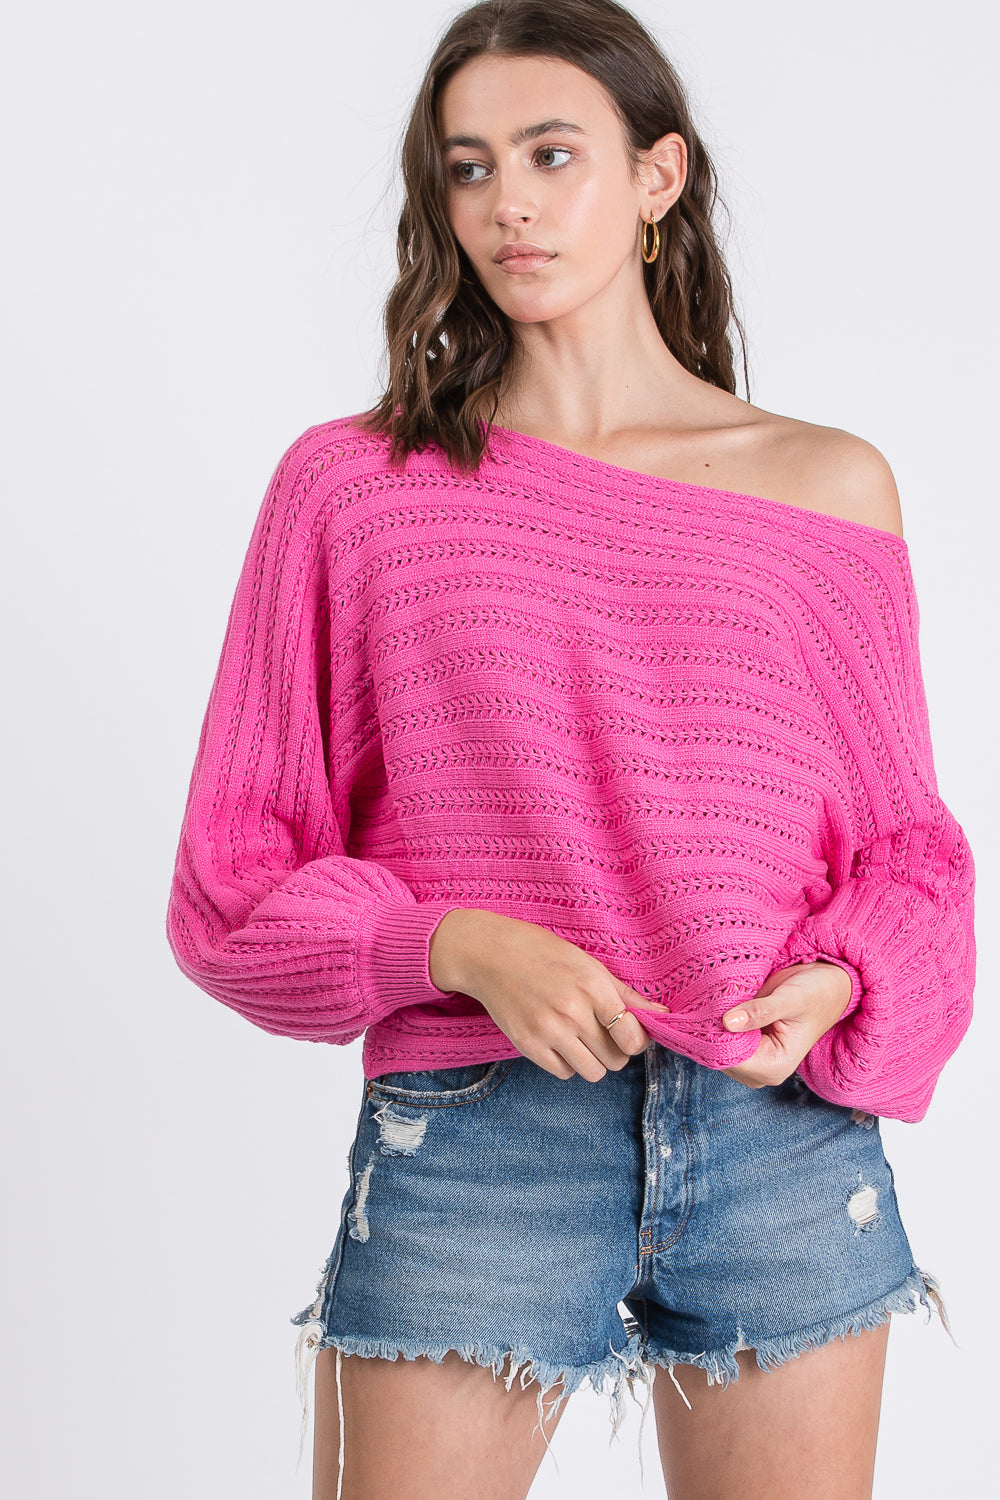 Batwing Balloon Sleeve Knit Top $35/each